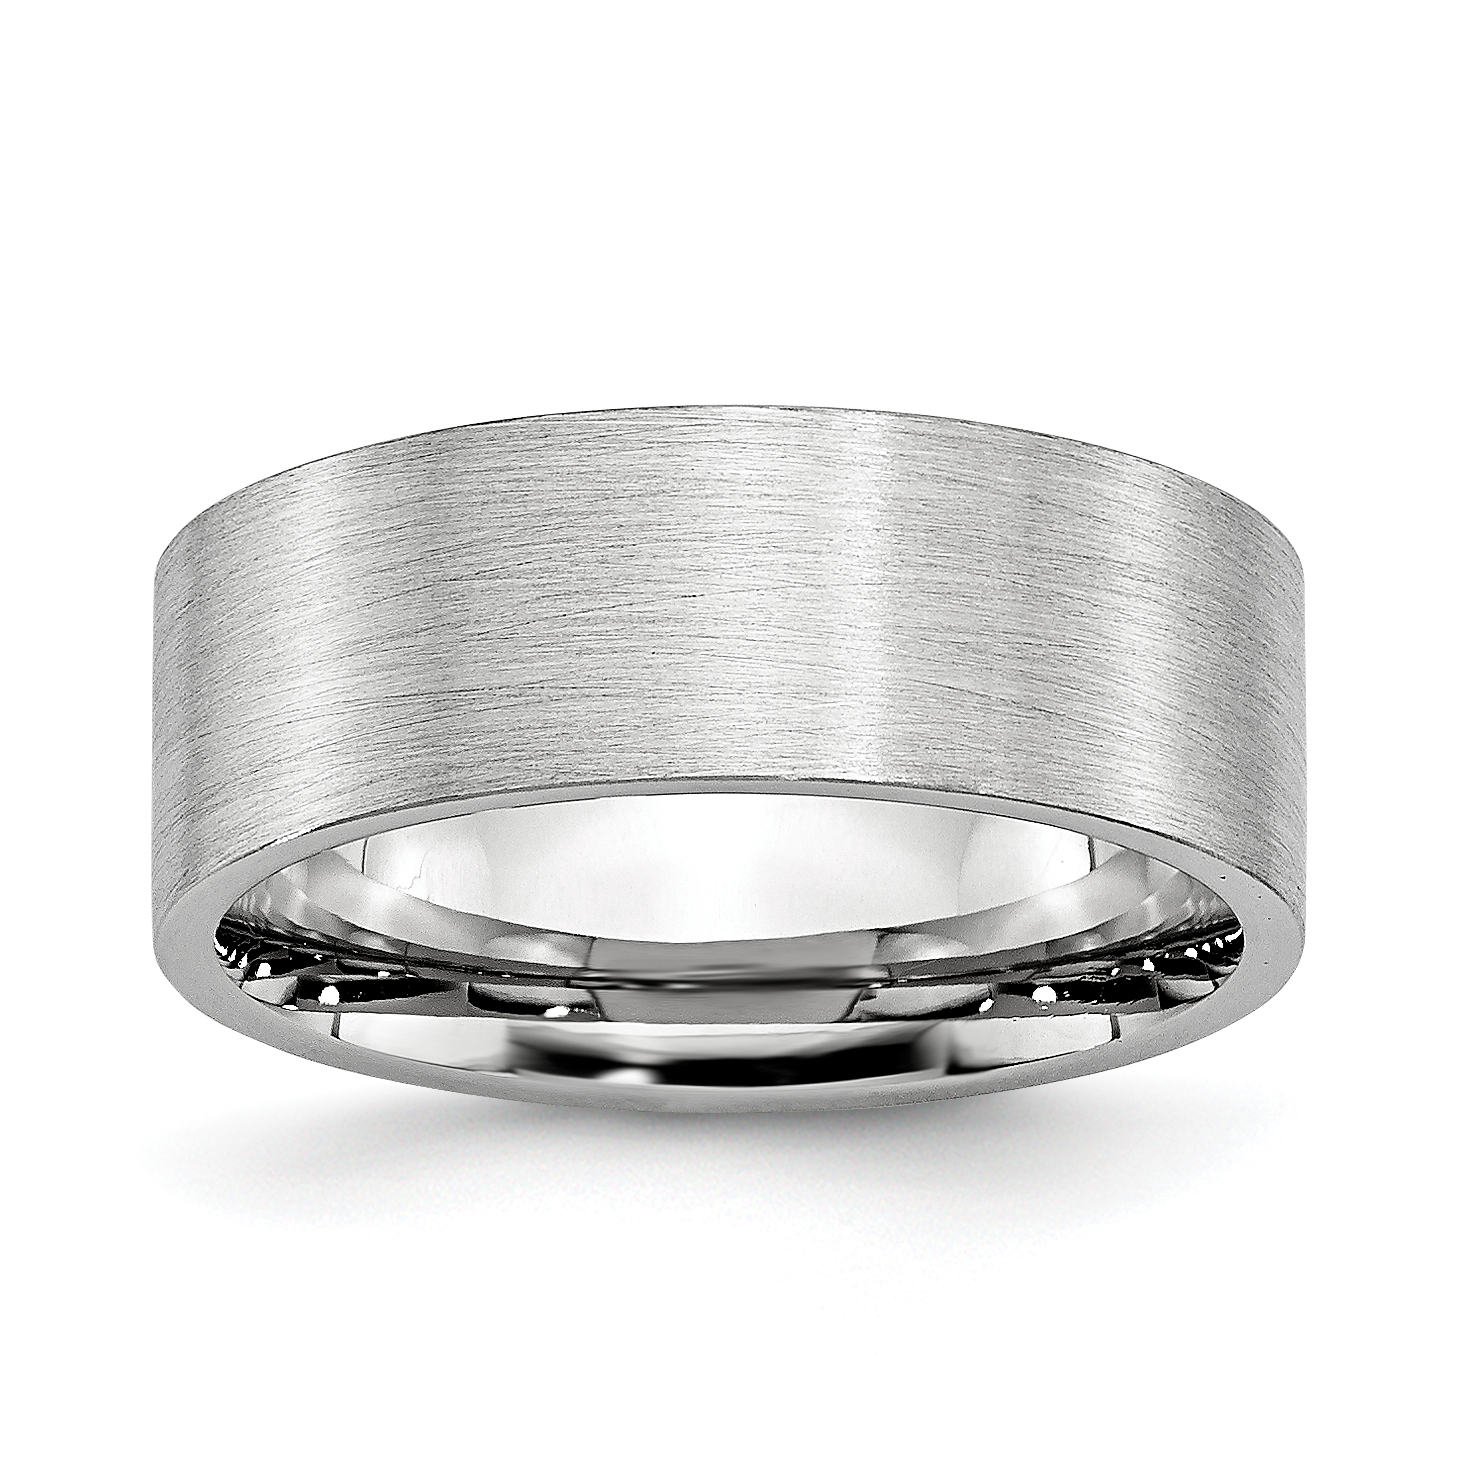 Cobalt Flat 8mm Wedding Ring Band Size 7.00 Classic Fashion Jewelry Gifts For Women For Her - image 6 of 6